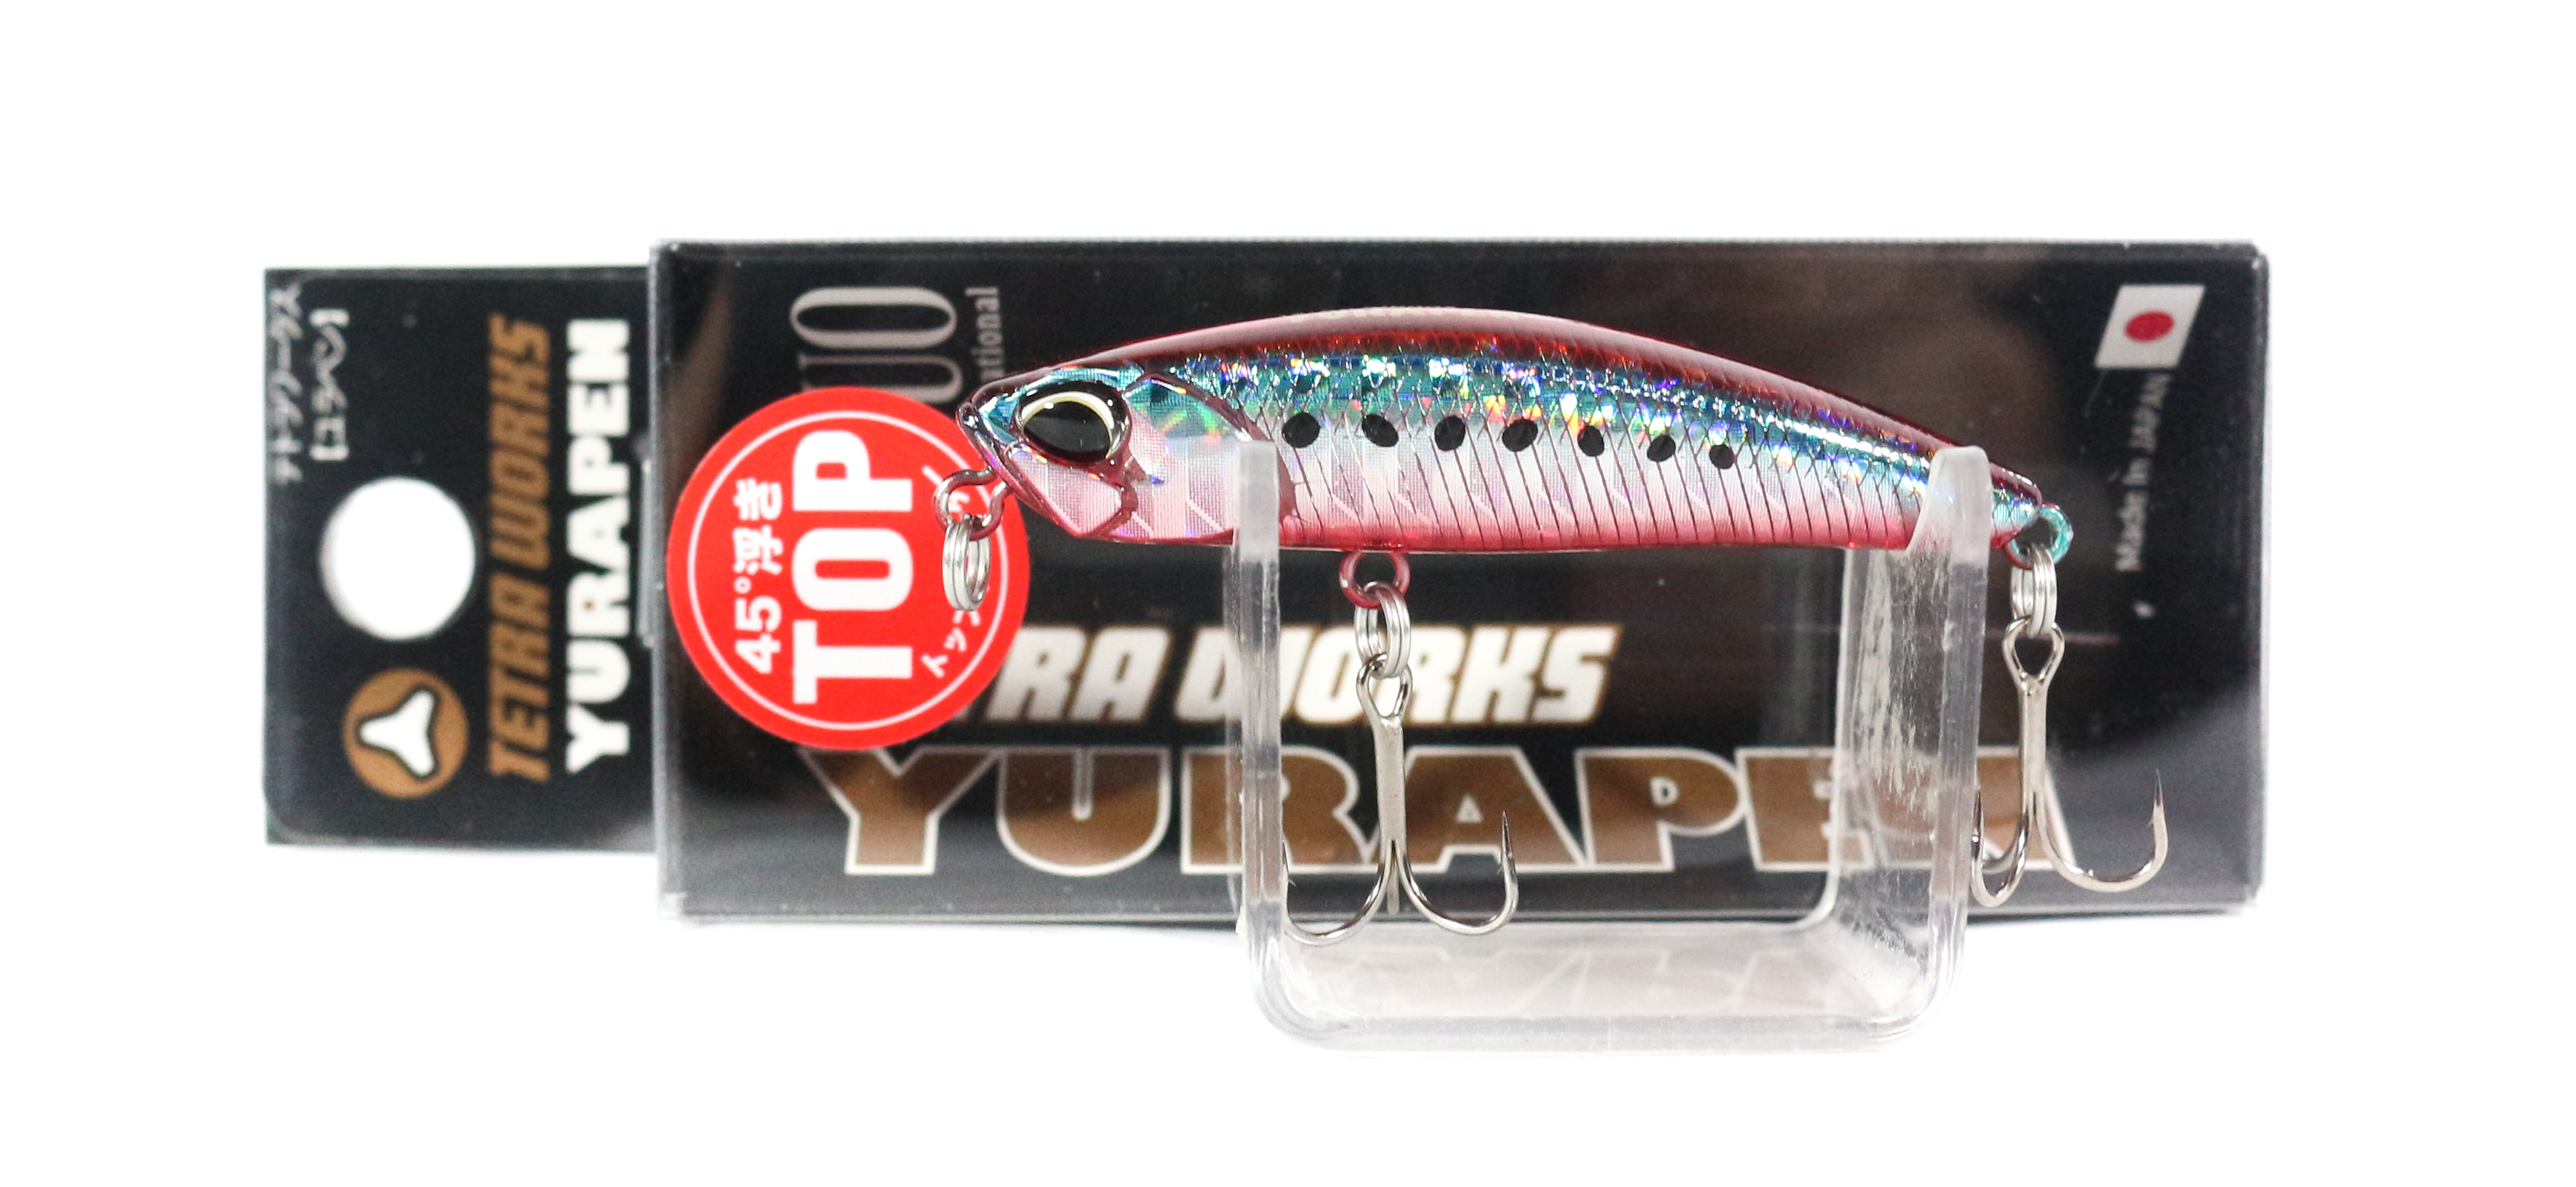 Duo Tetra Works Yurapen 48 mm Floating Lure GHA0335 (5031)